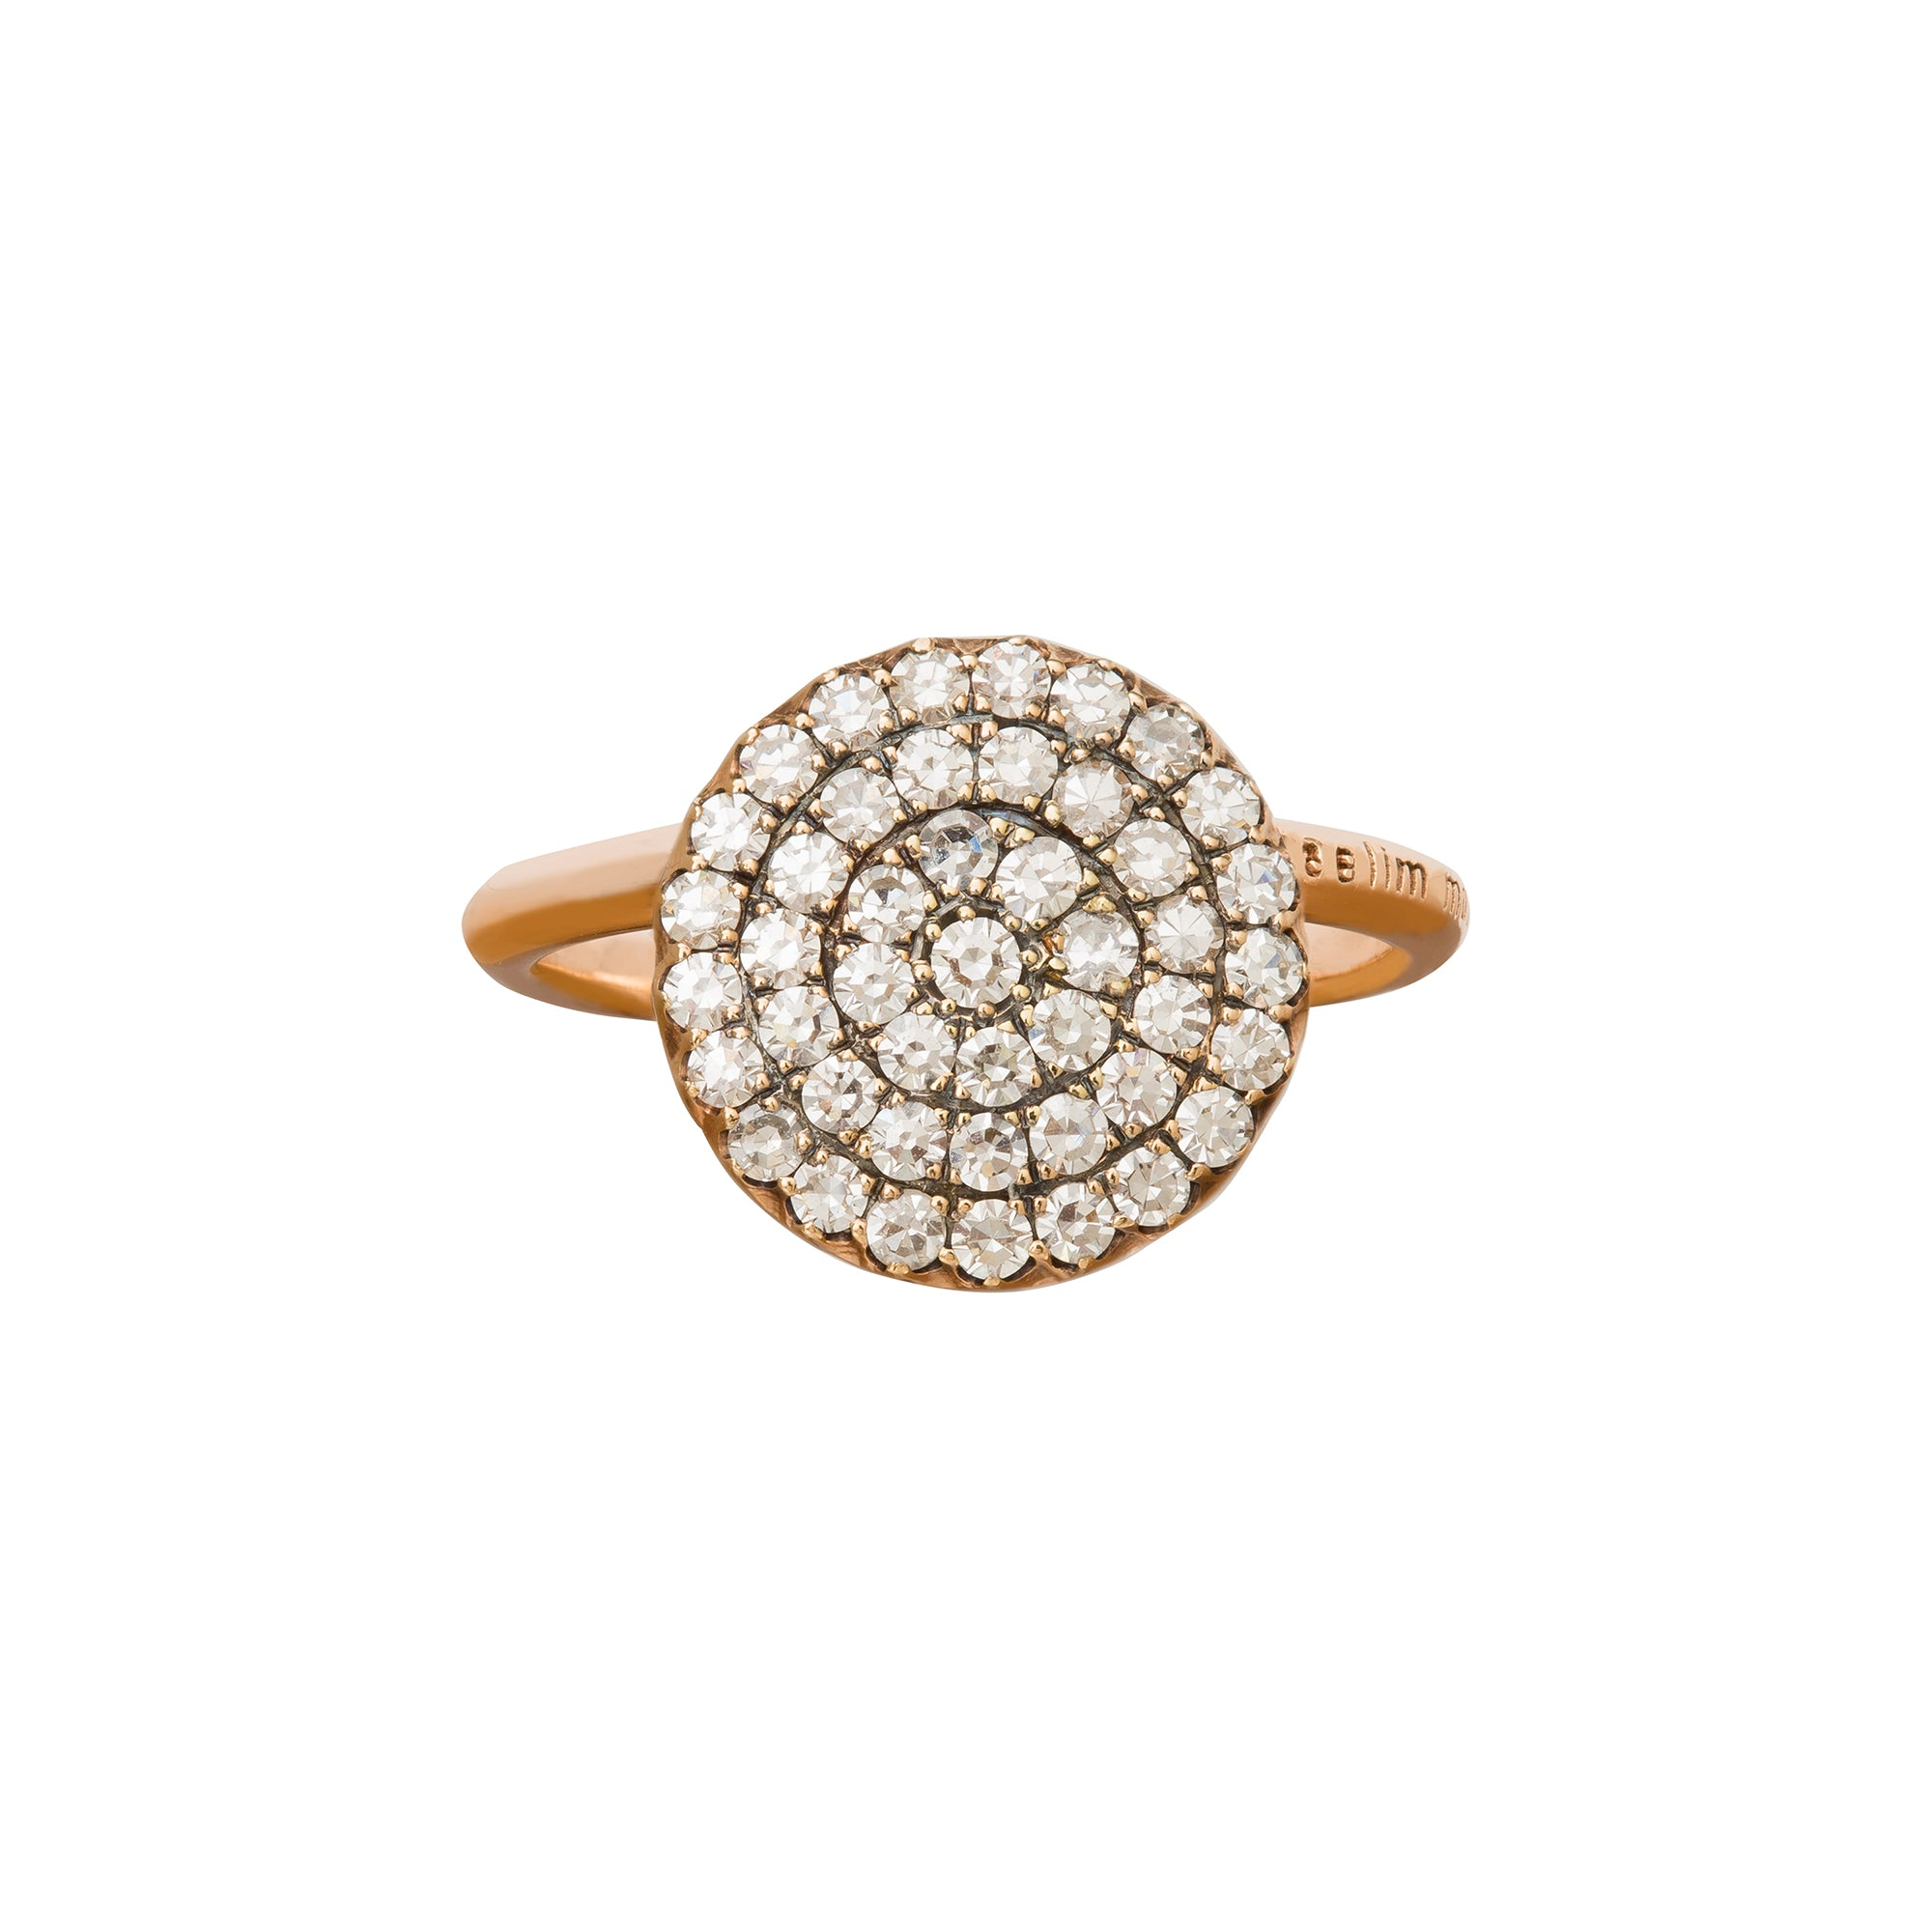 13mm Diamond Beirut Ring - Selim Mouzannar - Rings | Broken English Jewelry